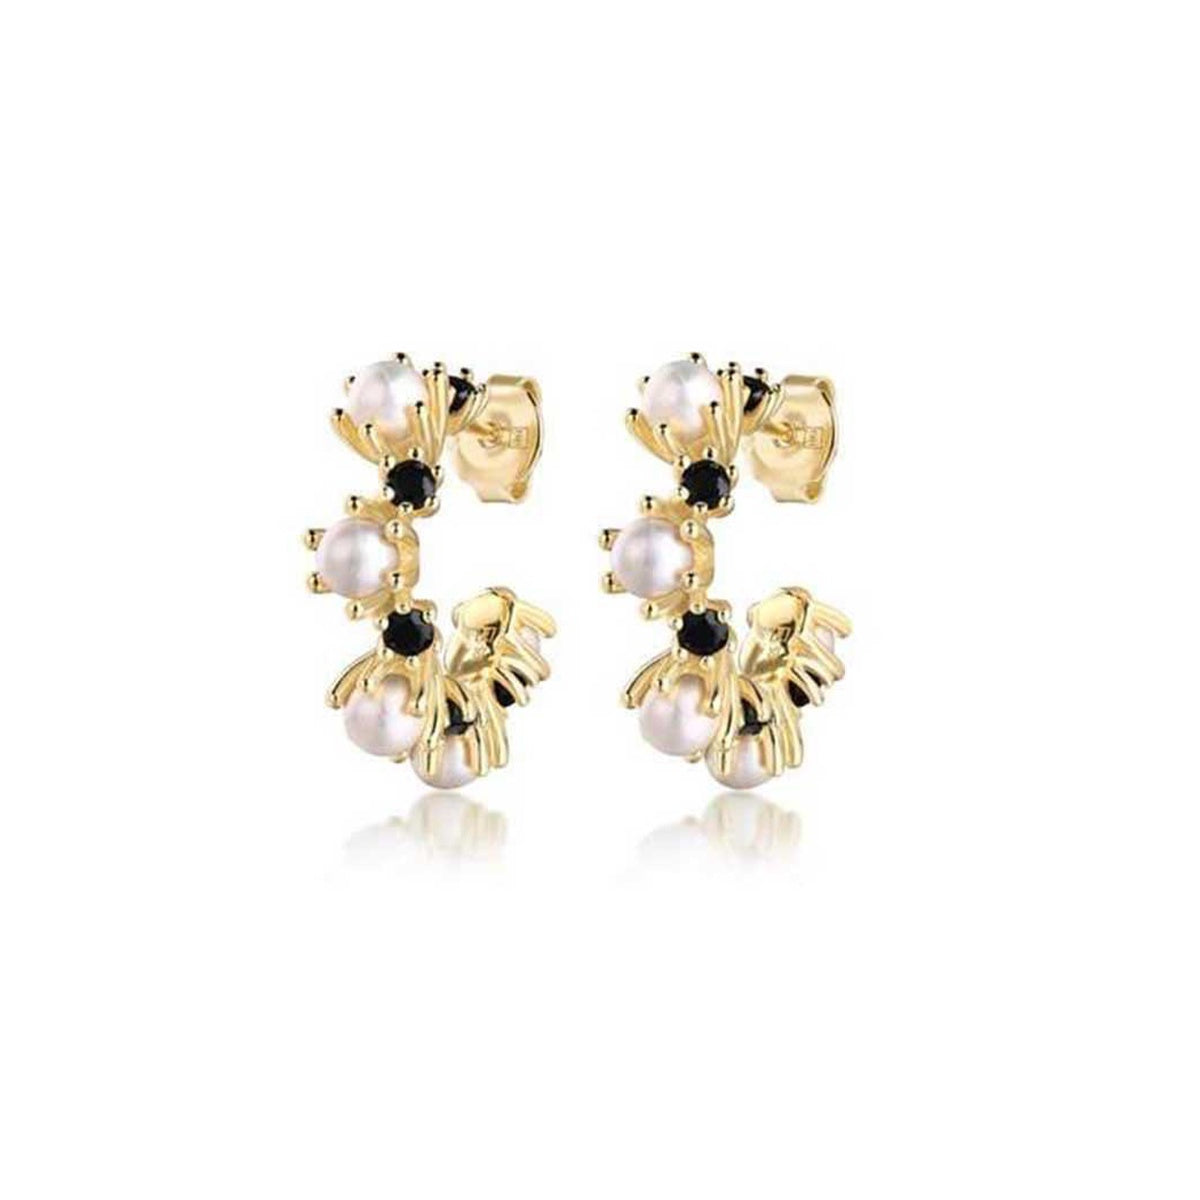 Paris Is Burning Pearl & Black Gemstone Earrings